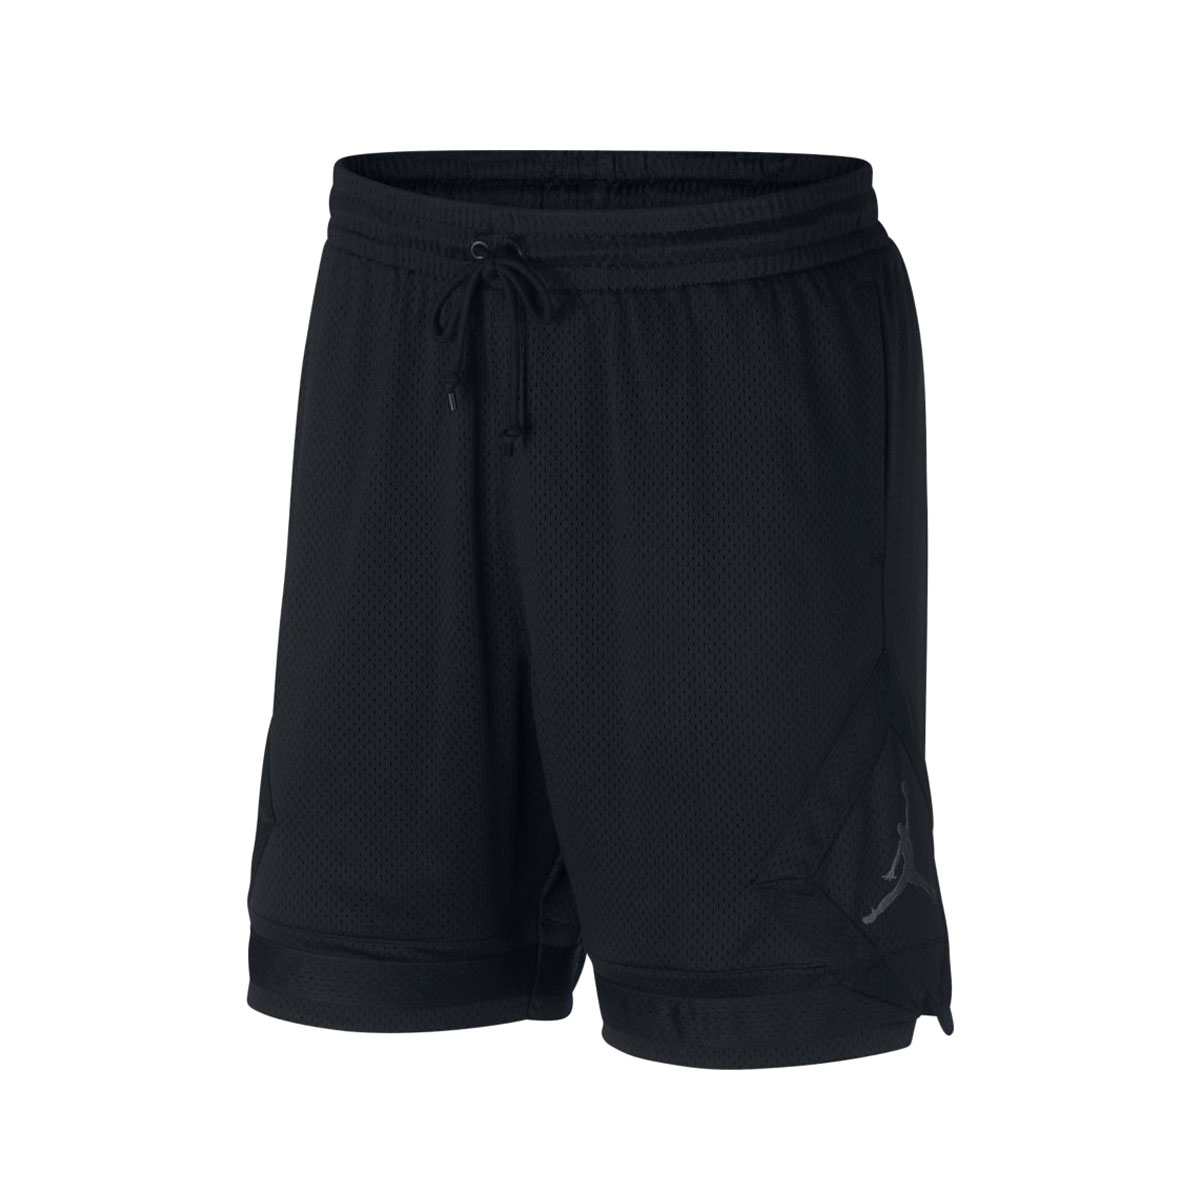 40c925789d The design which lets you image the shorts for the professional game of MJ  where Aiko Nic fused if casual. A mesh ...